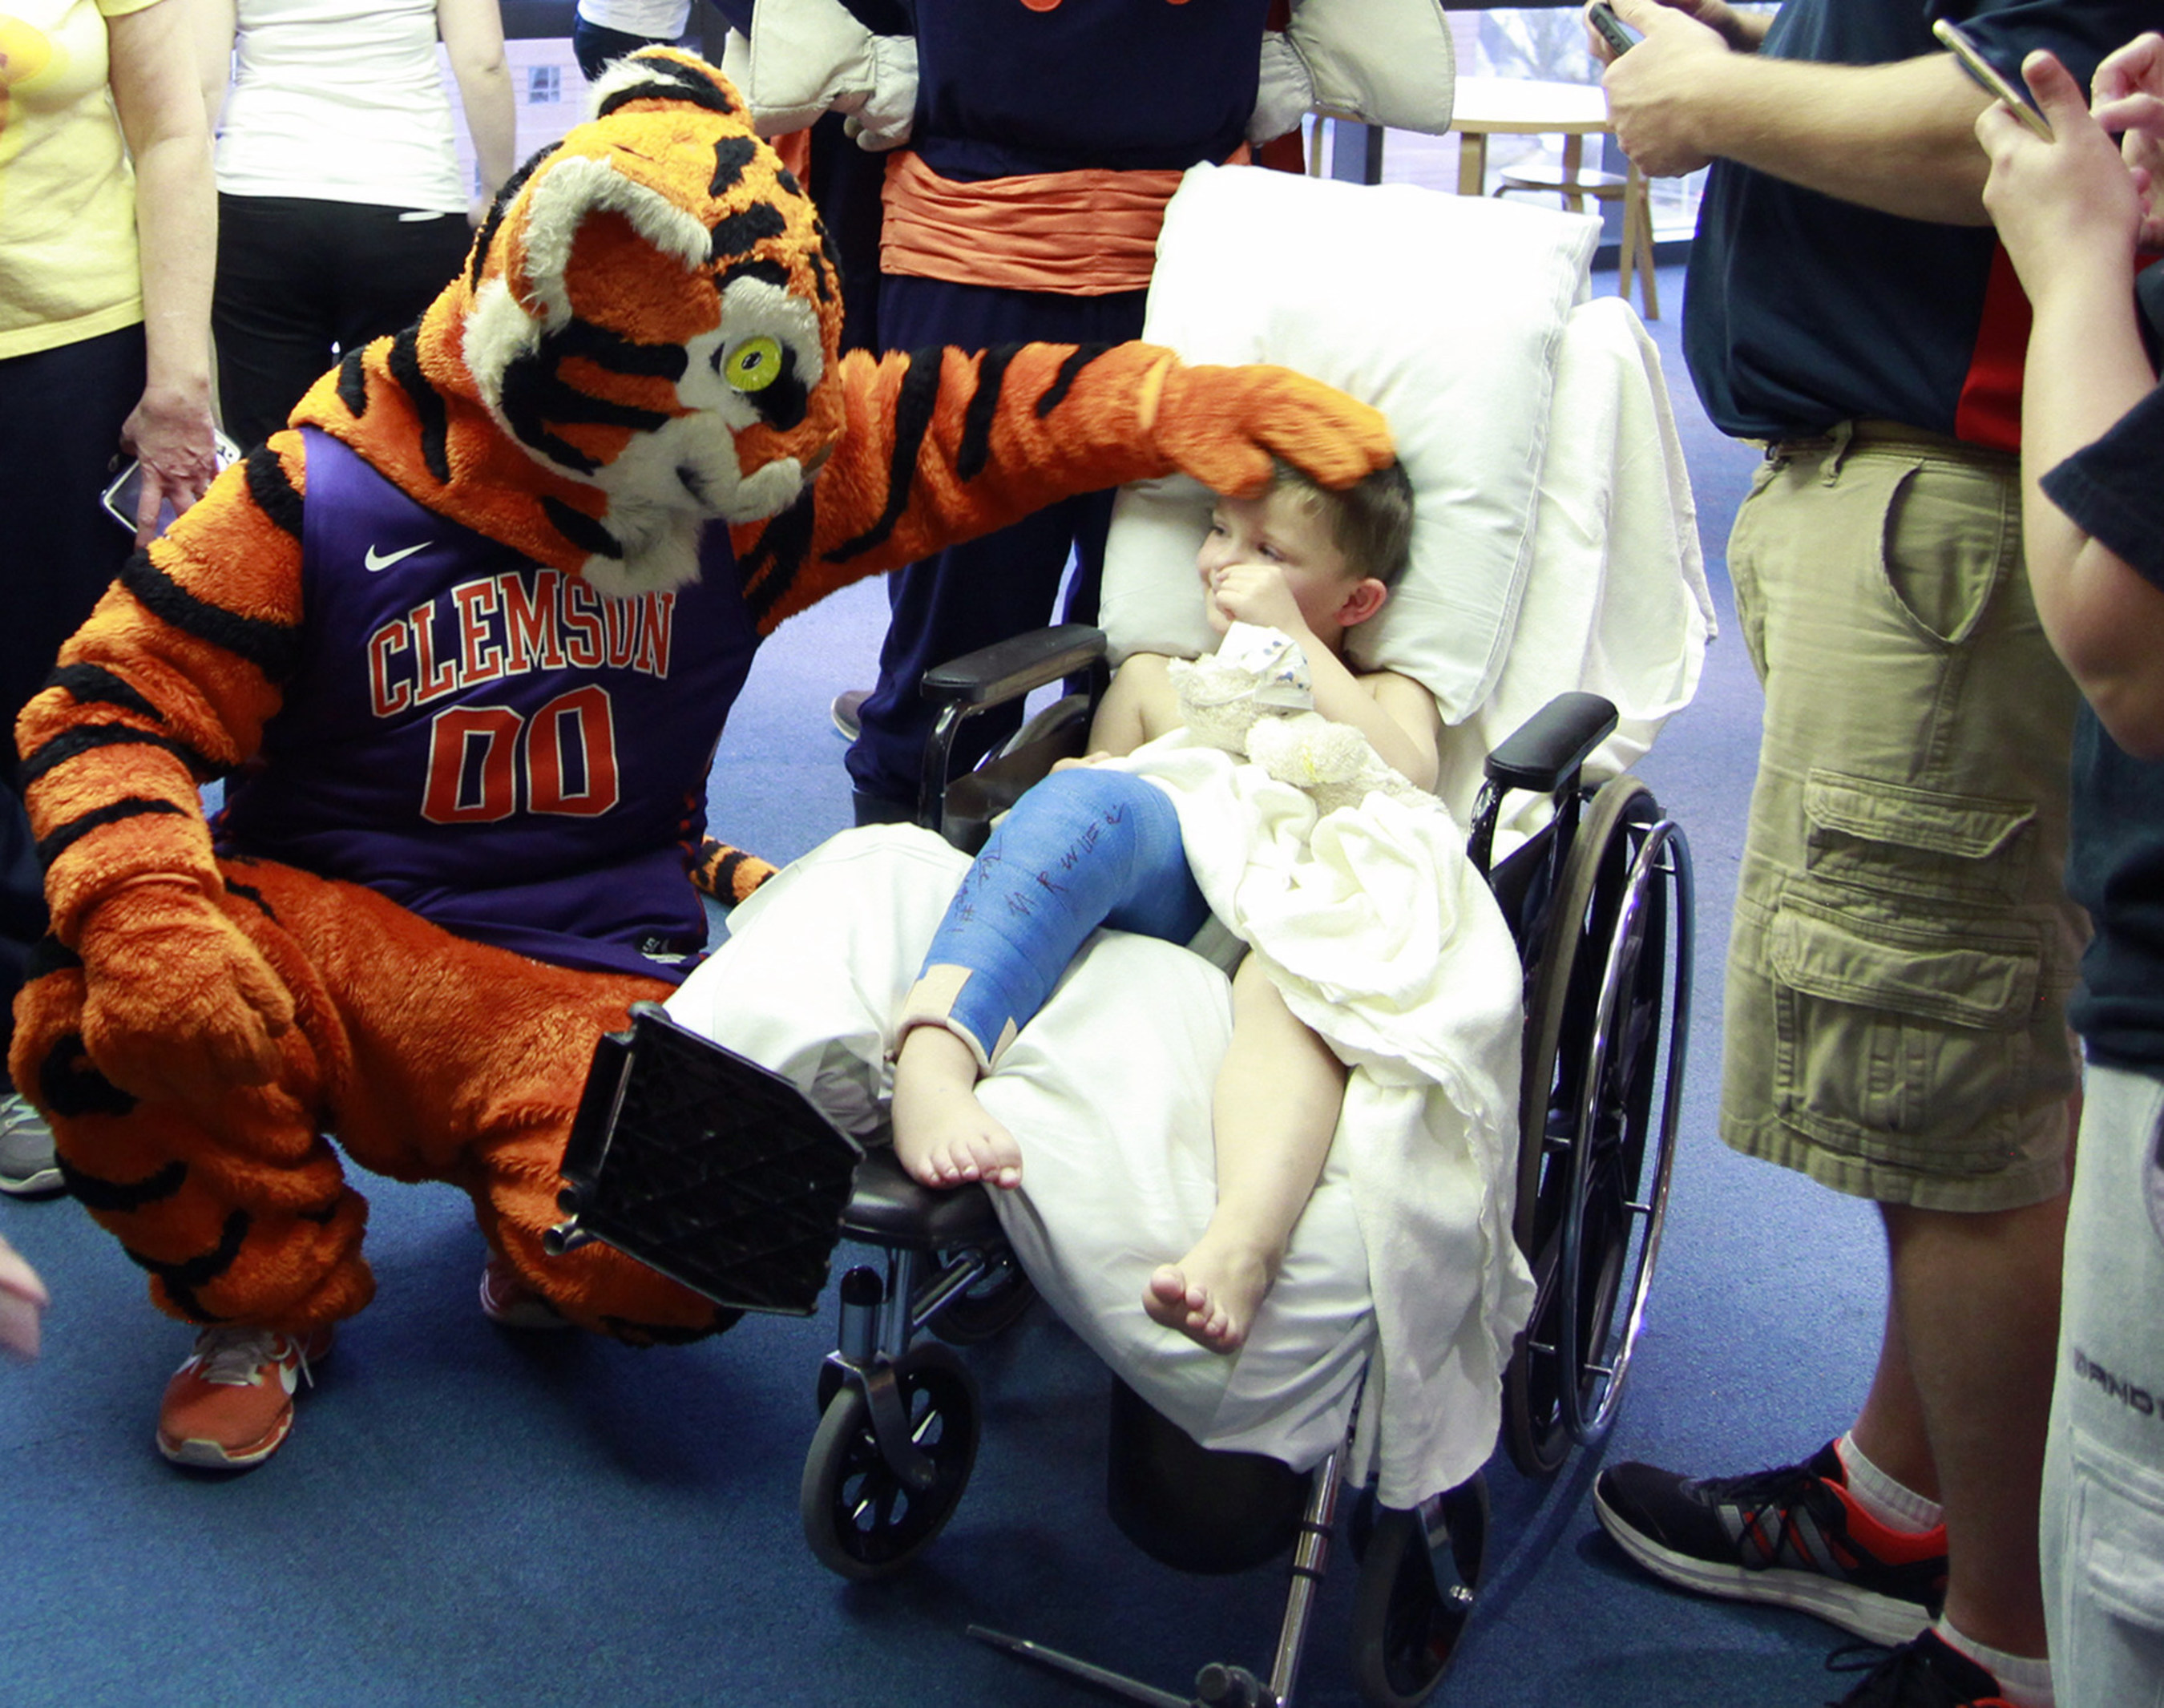 Four-year-old Kyler Rippey smiles as the Clemson Tiger wishes him well. The mascots of the Atlantic Coast Conference paid a visit to Brenner Children's Hospital as part of an outreach initiative for the 2015 ACC Men's Basketball Tournament.